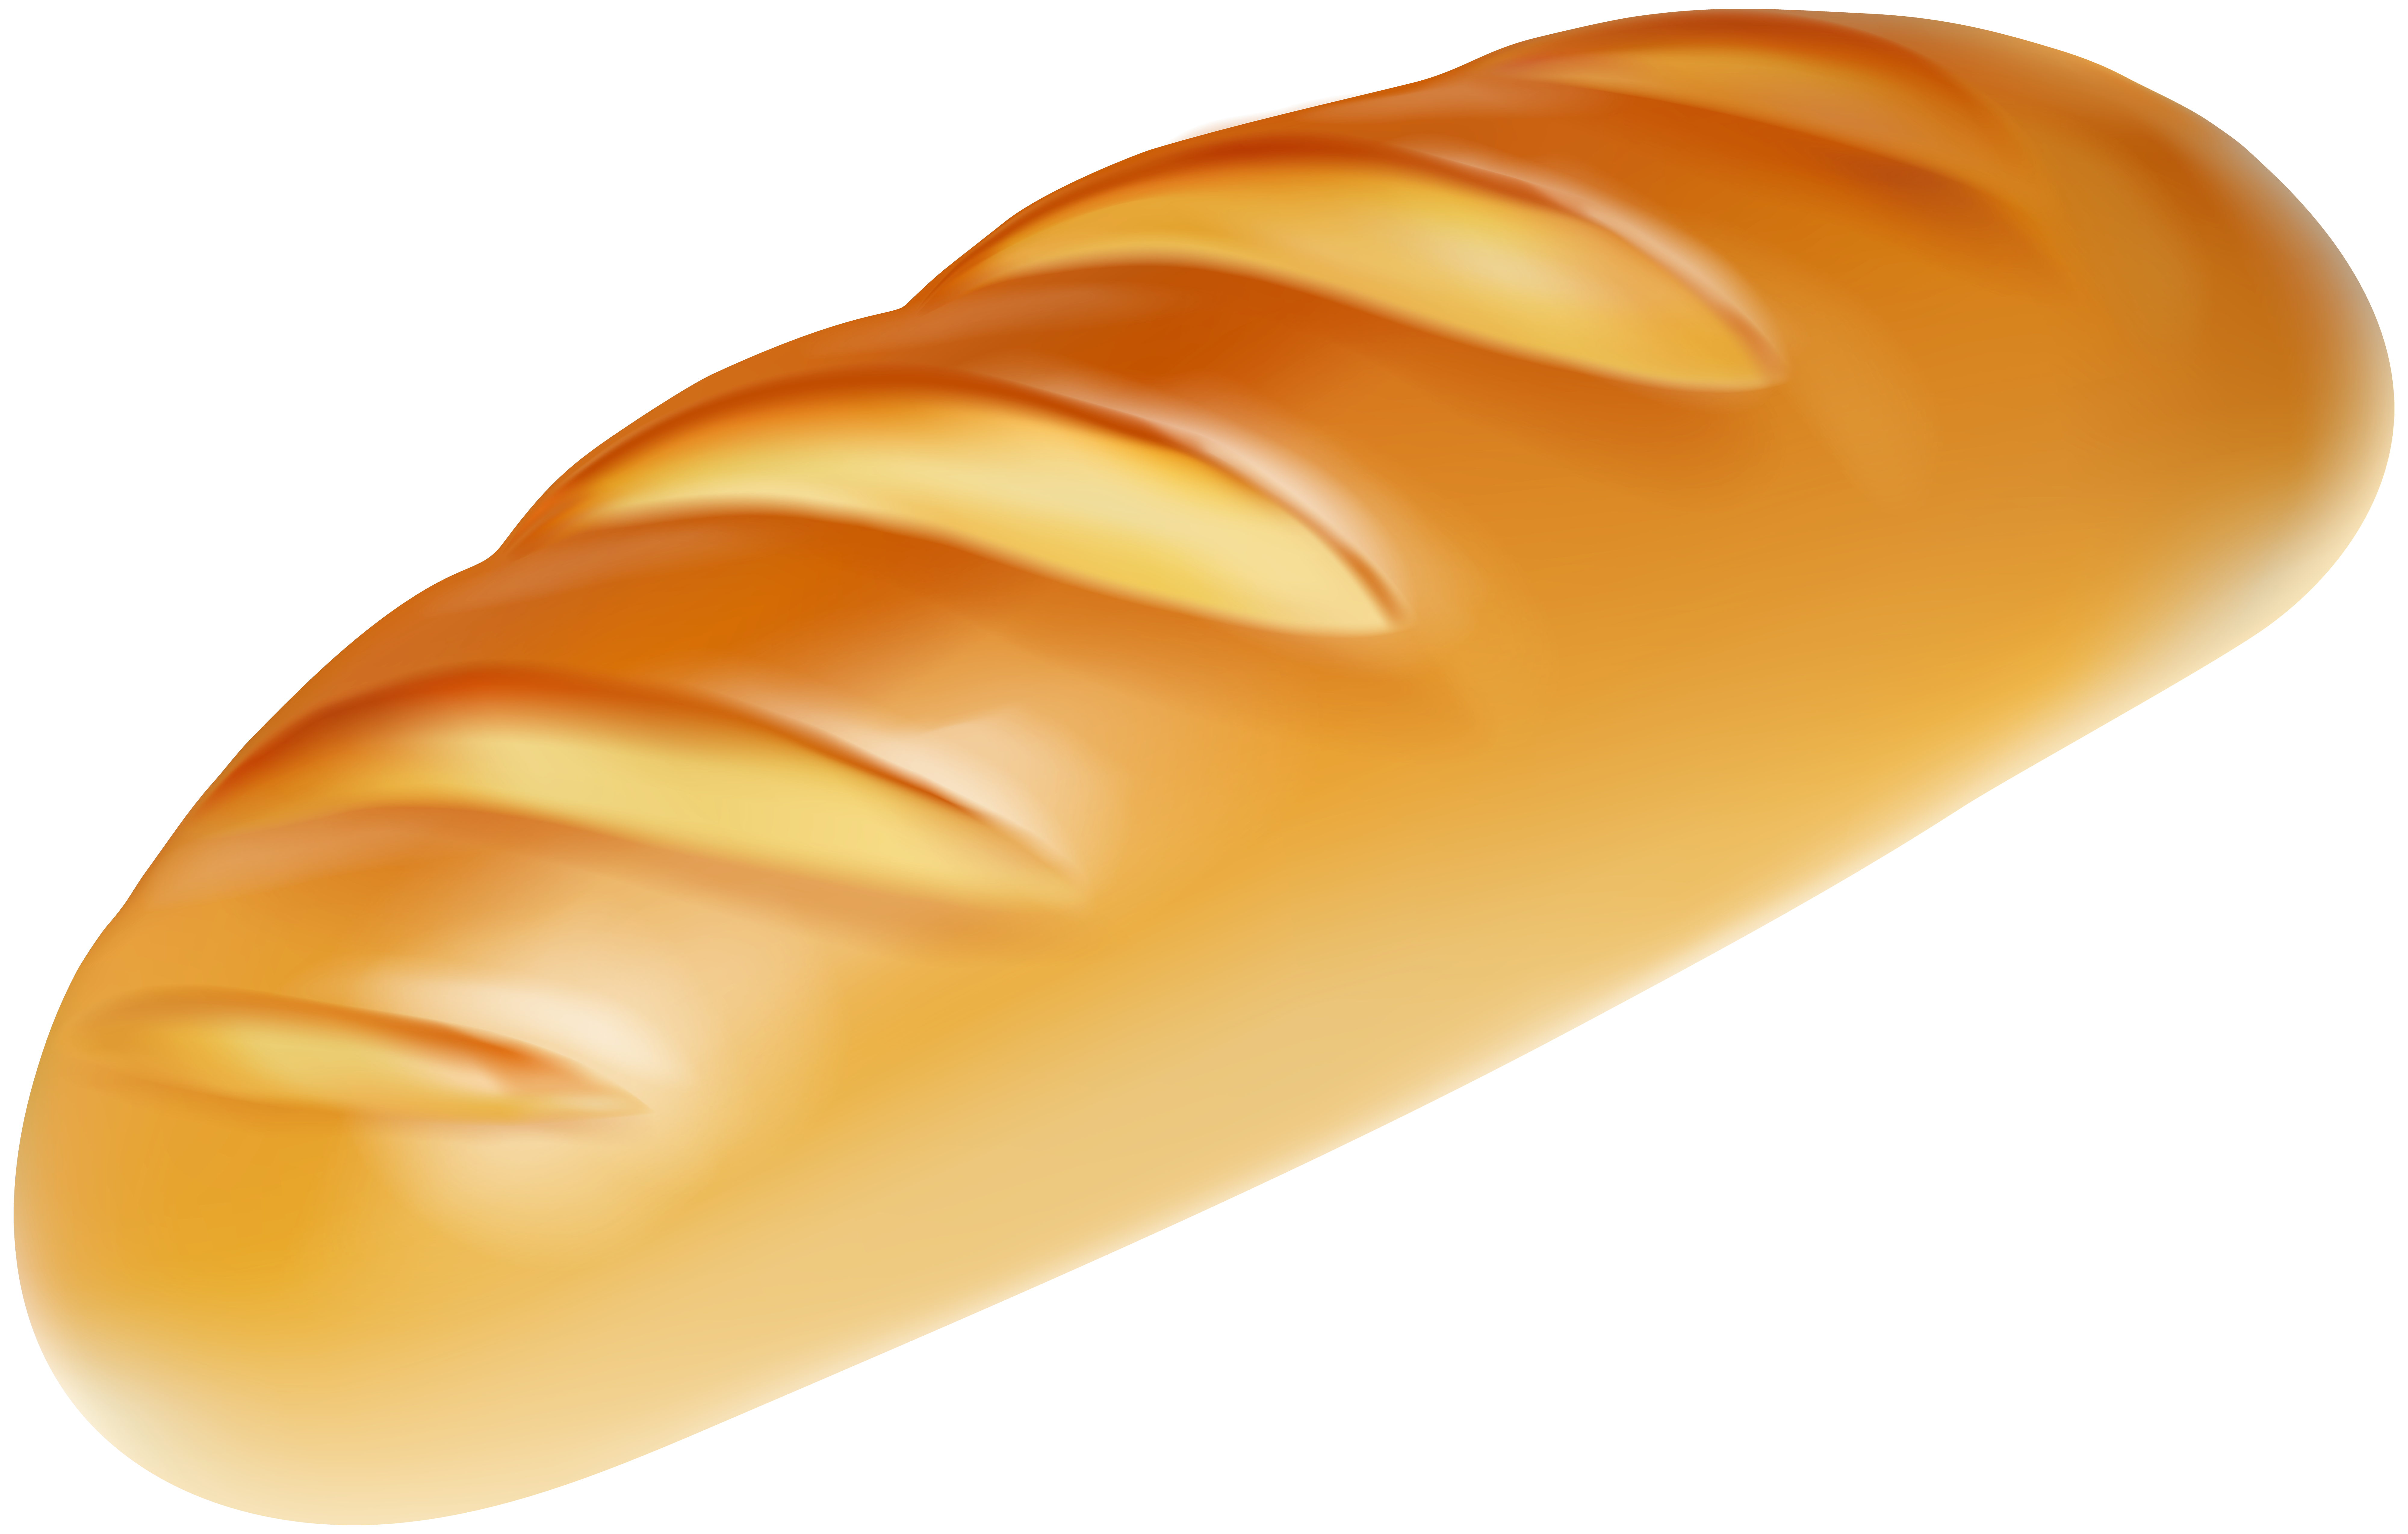 Png best web. Clipart bread package